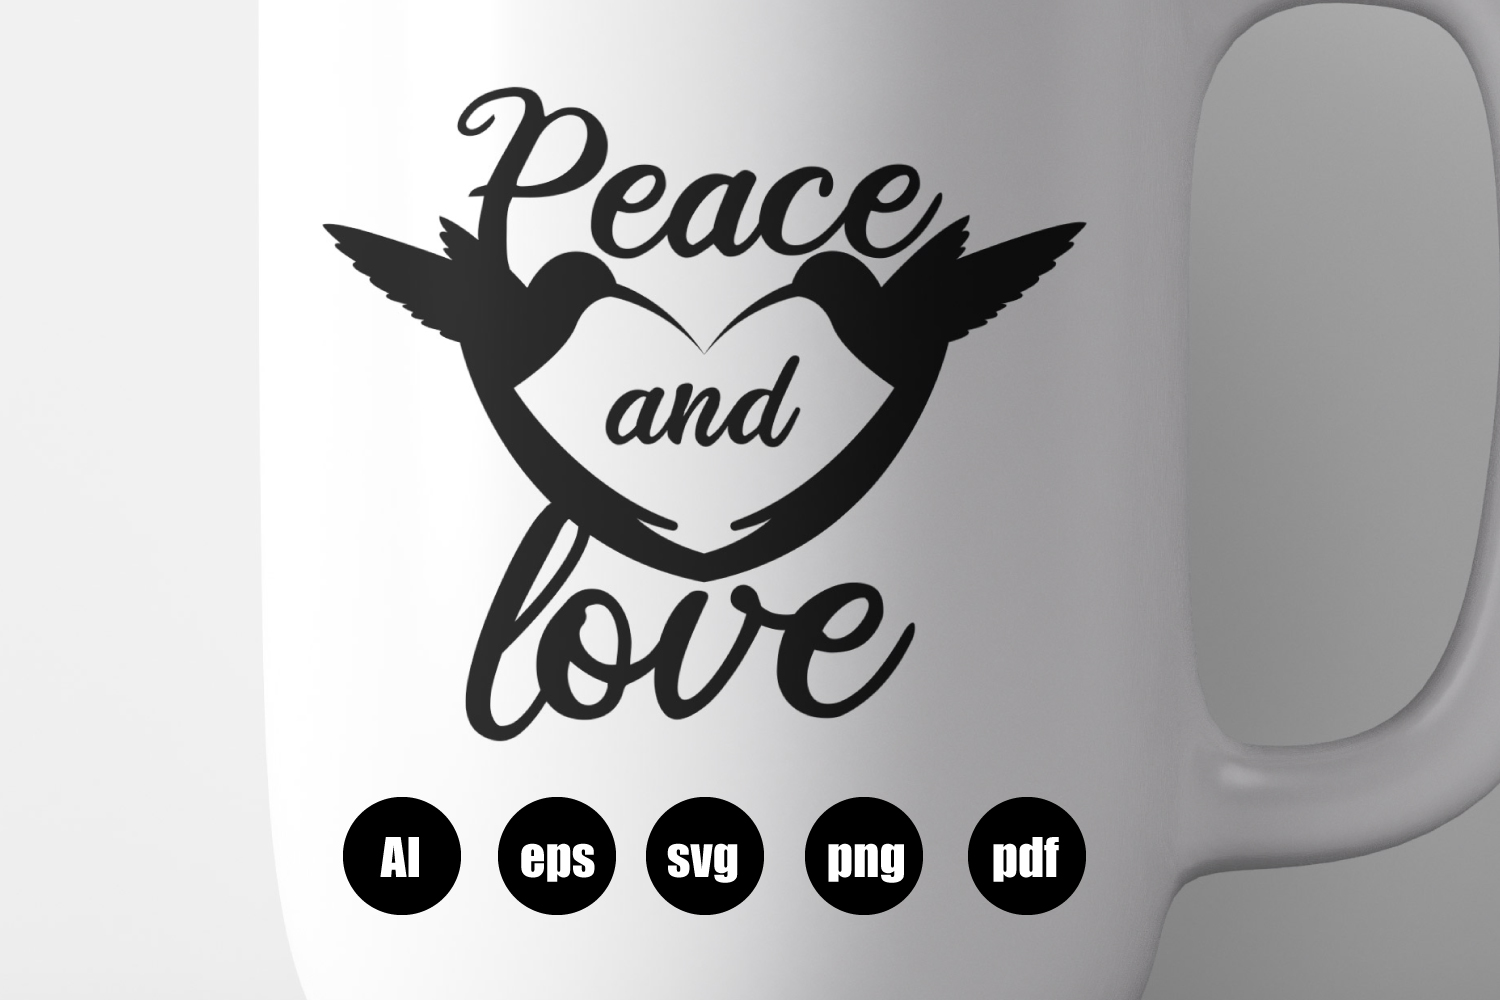 Peace and Love SVG, EPS, AI, PDF, PNG example image 1